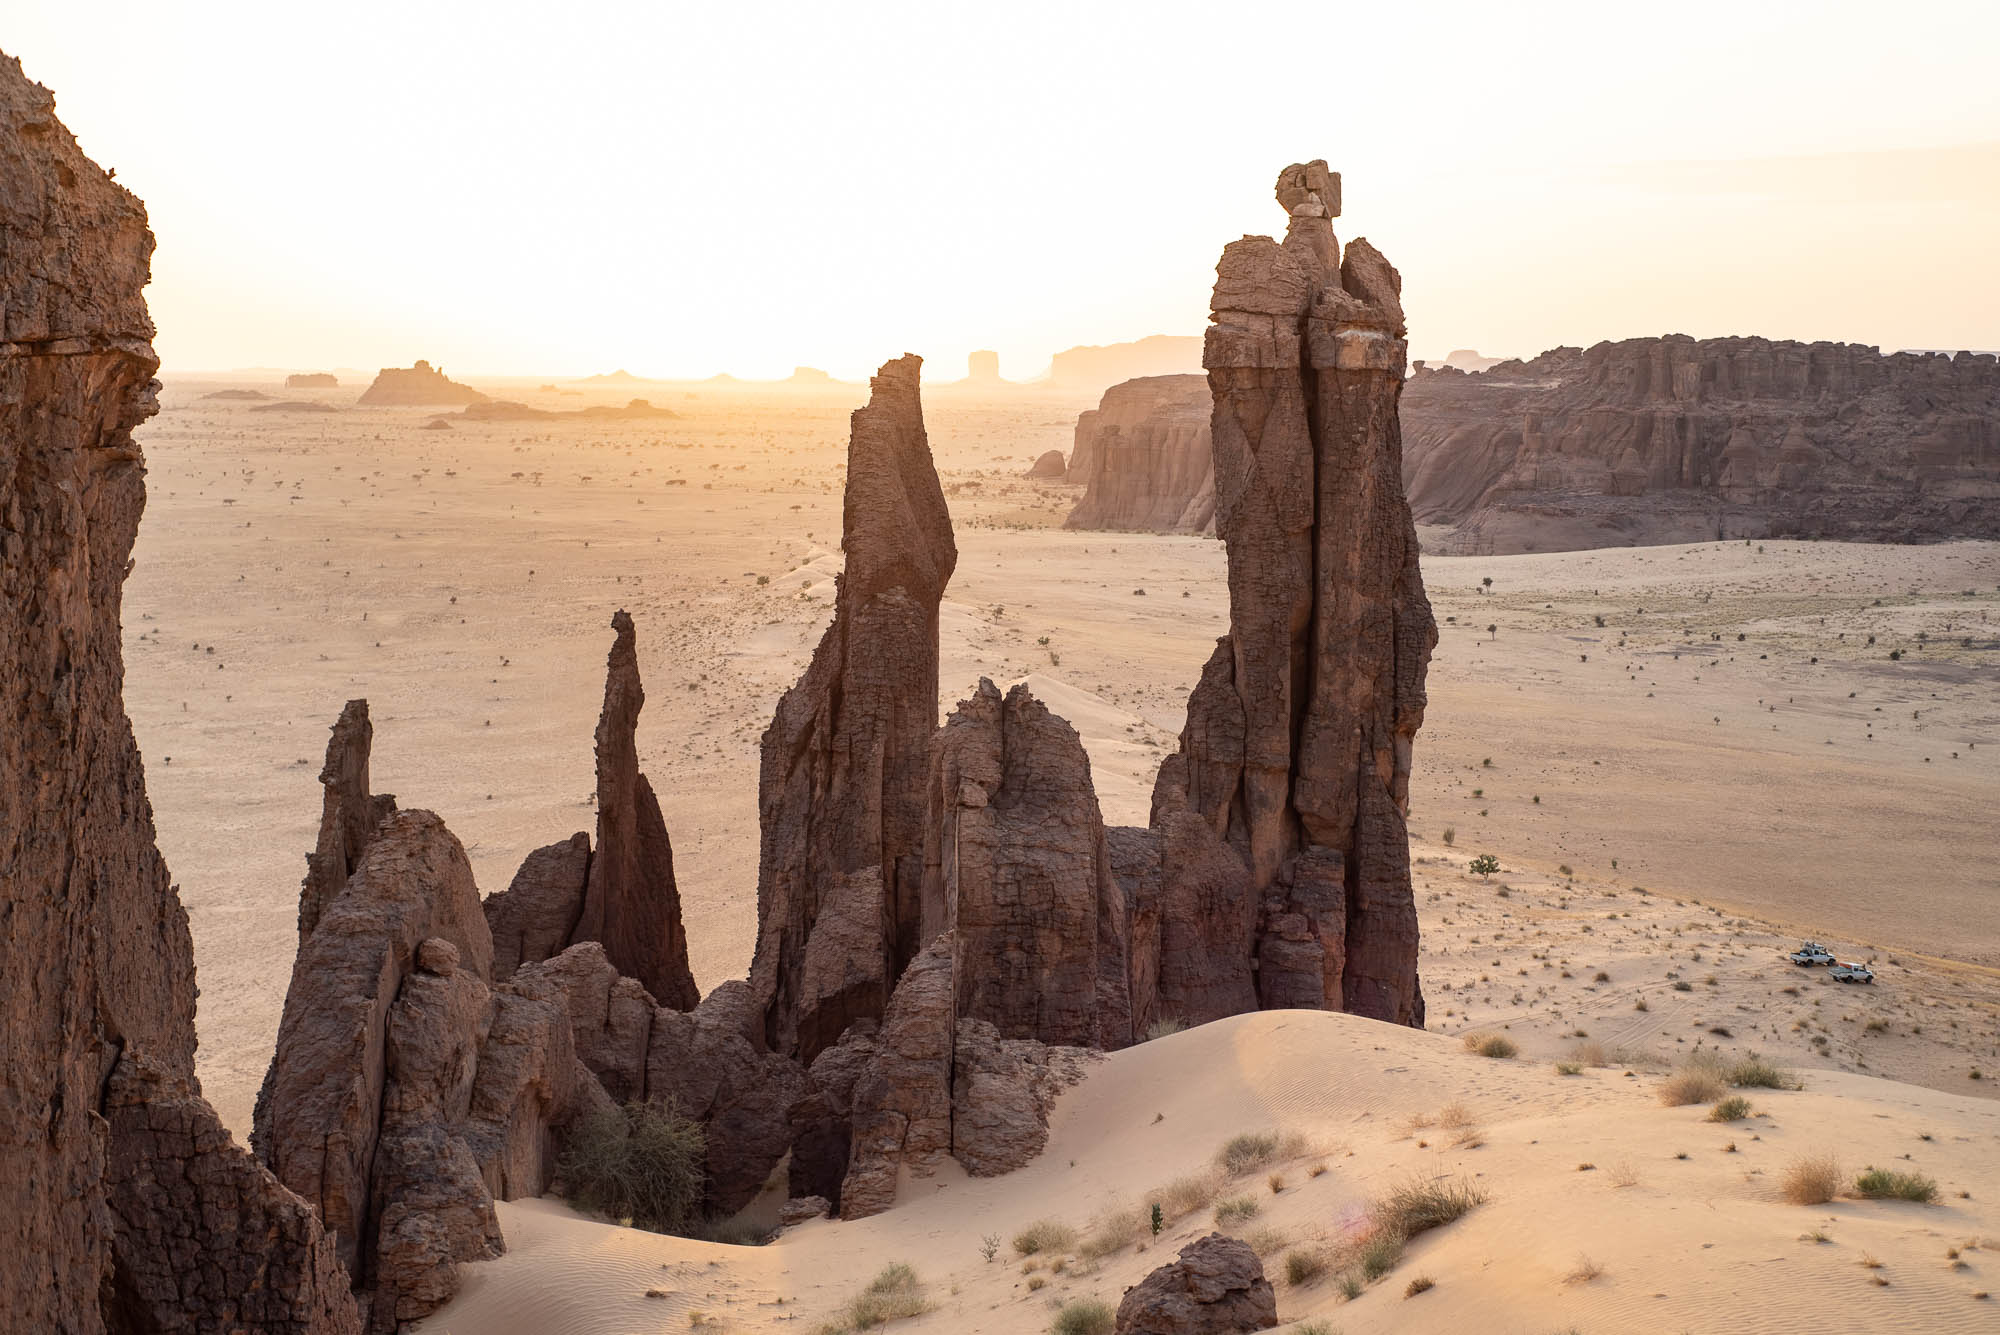 https://www.c4photosafaris.com/uploader/images/ENNEDI_(2).jpg